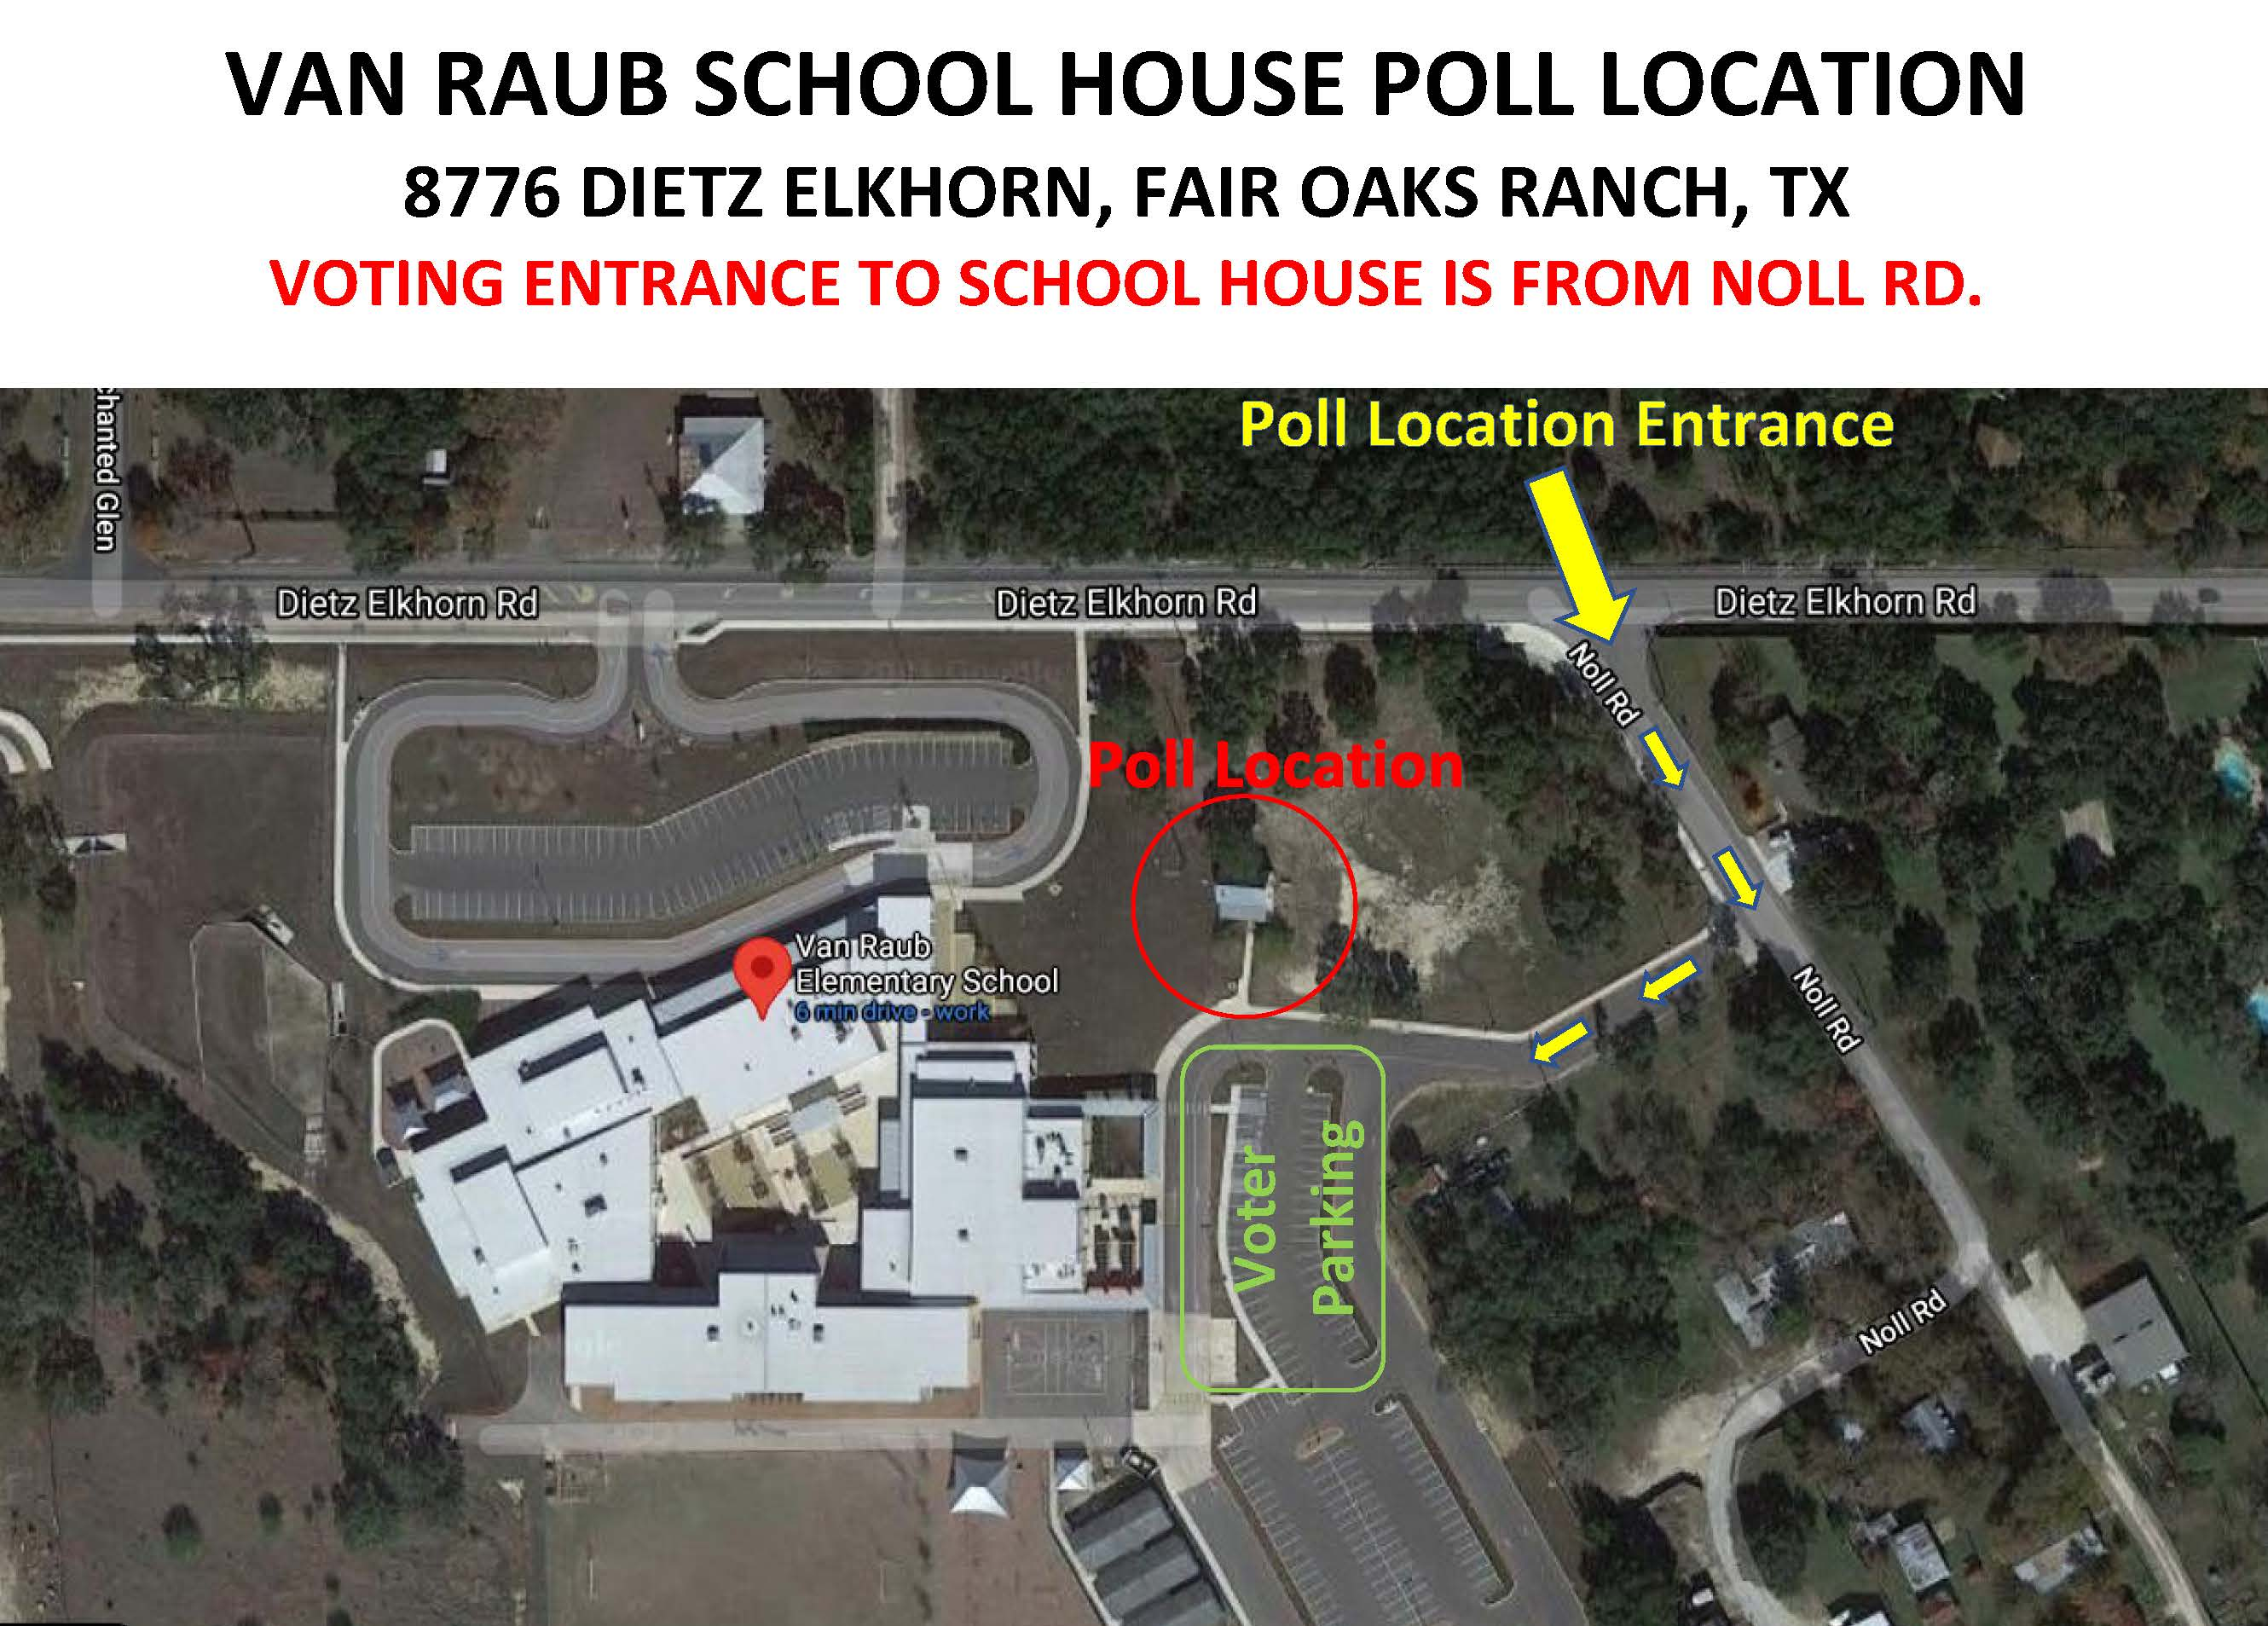 Van Raub School House Map